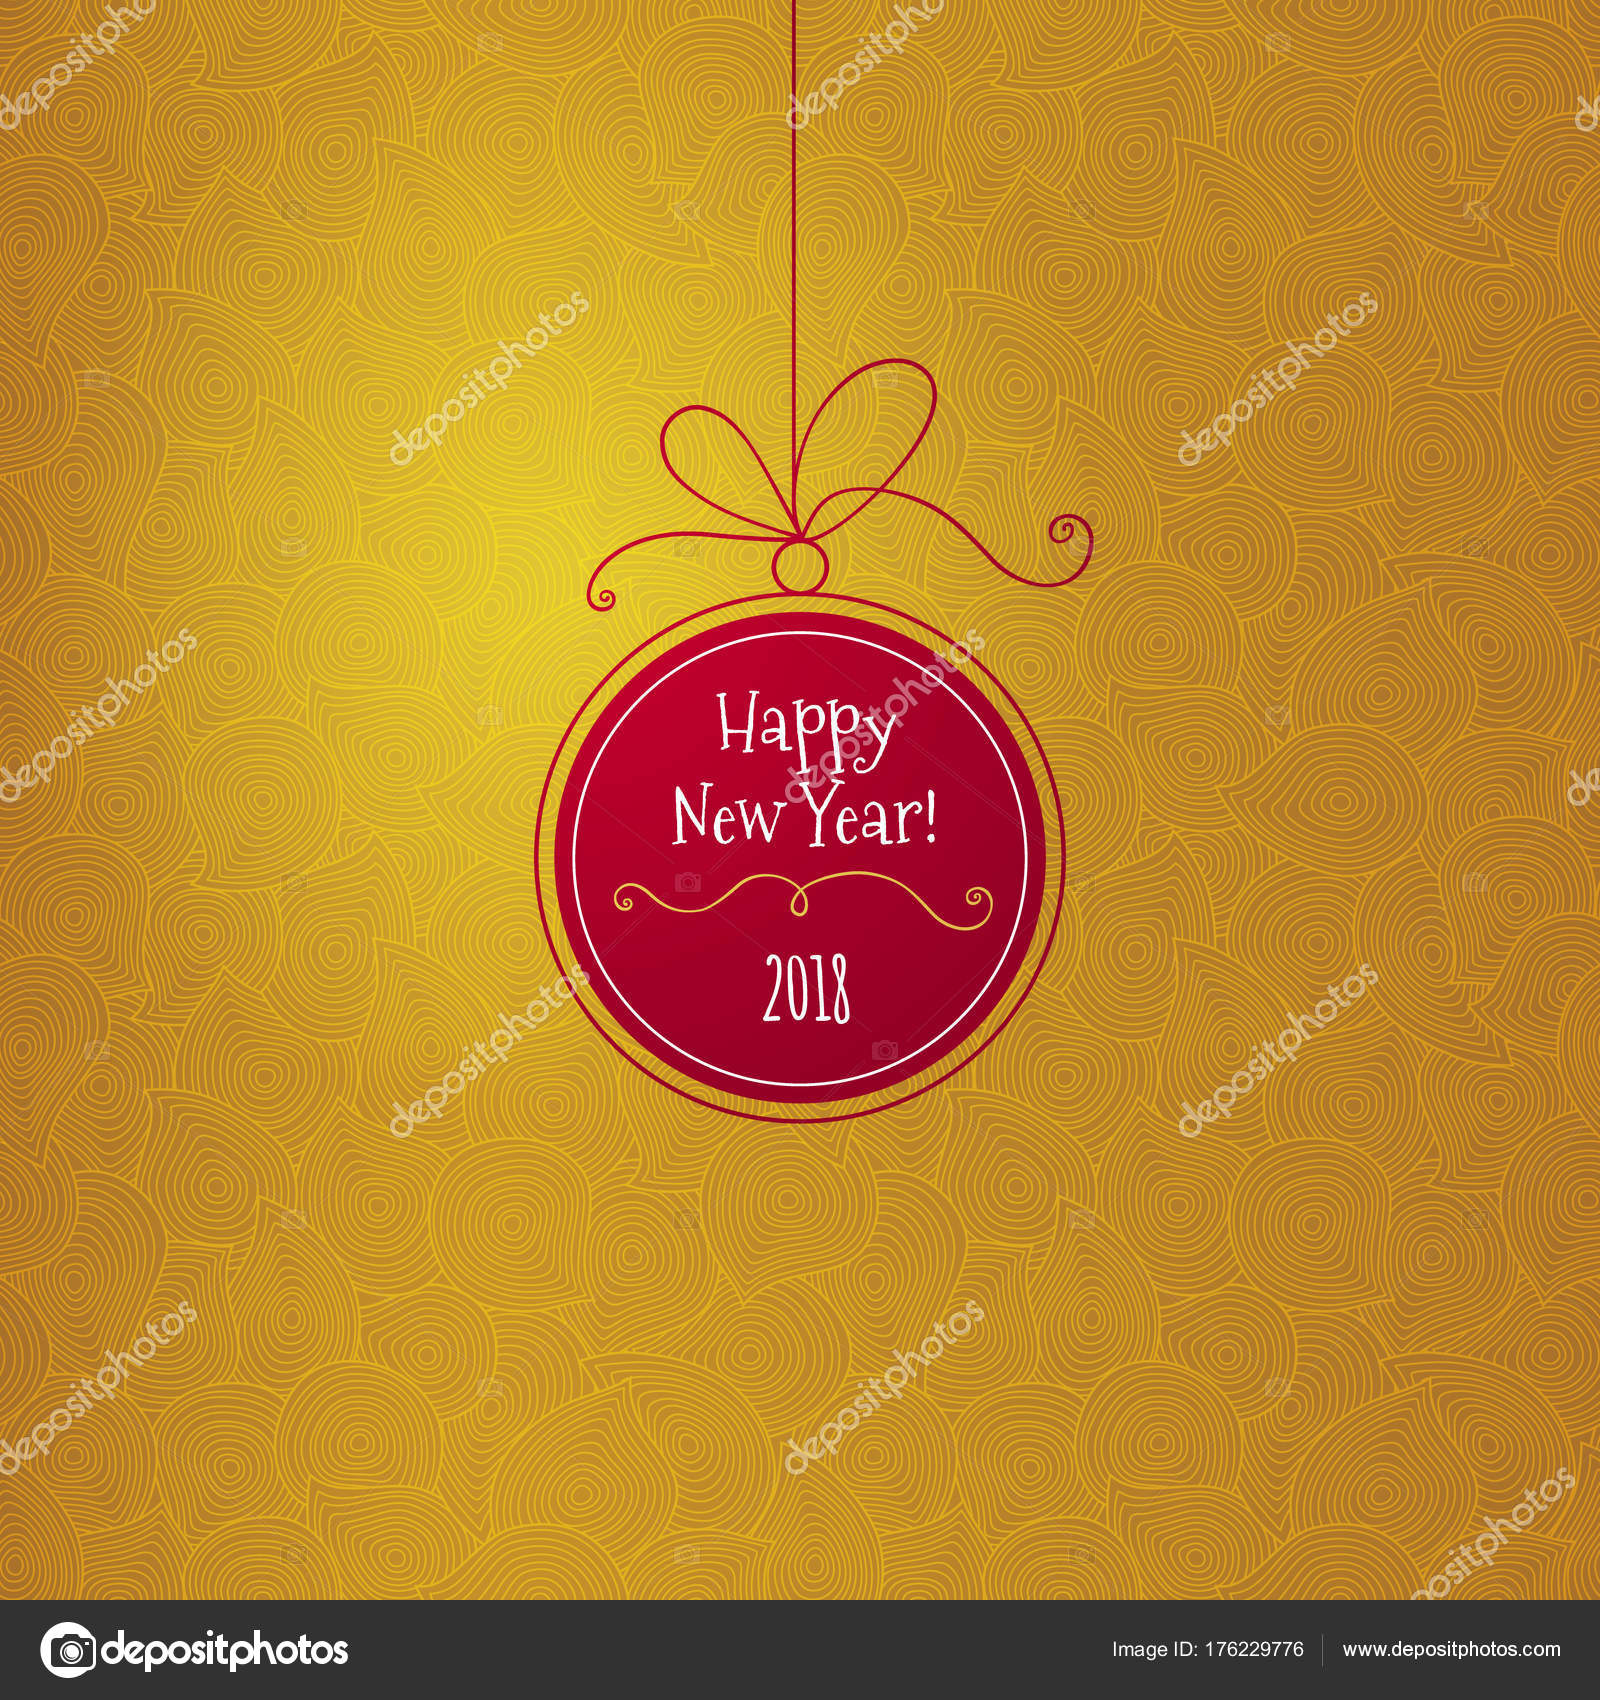 Red Ball With New Years Greeting On Golden Backdrop Stock Vector